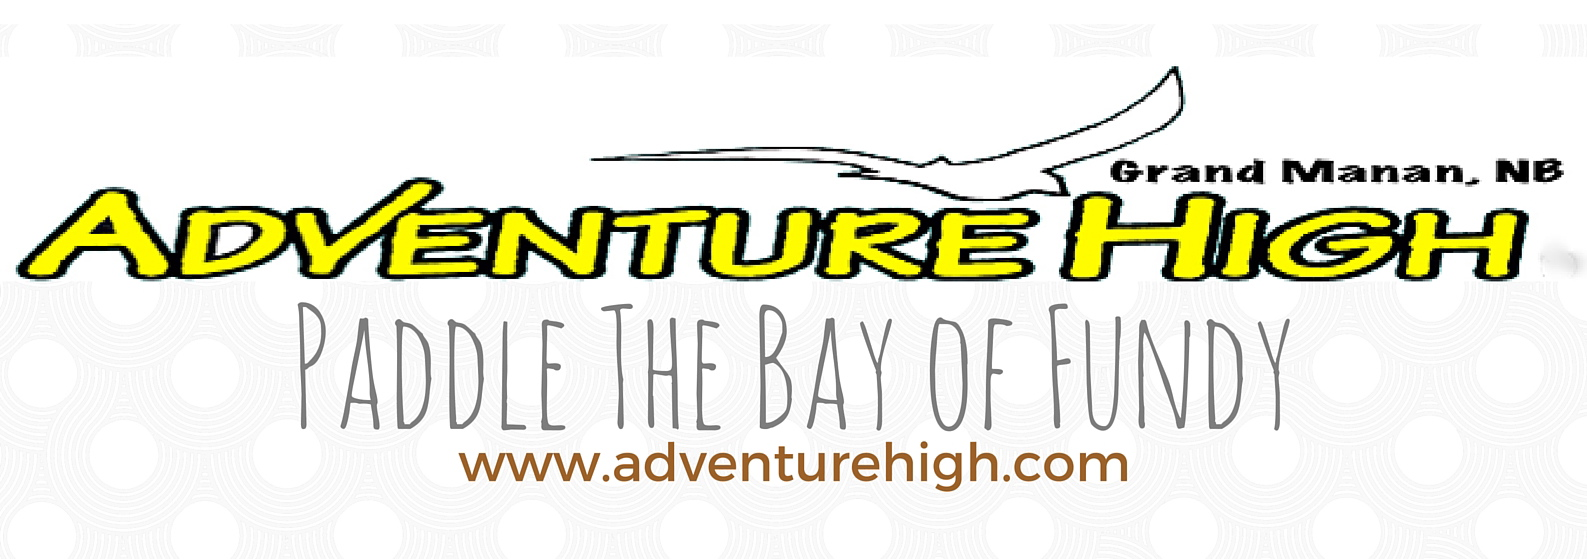 Adventure High Sea kayaking